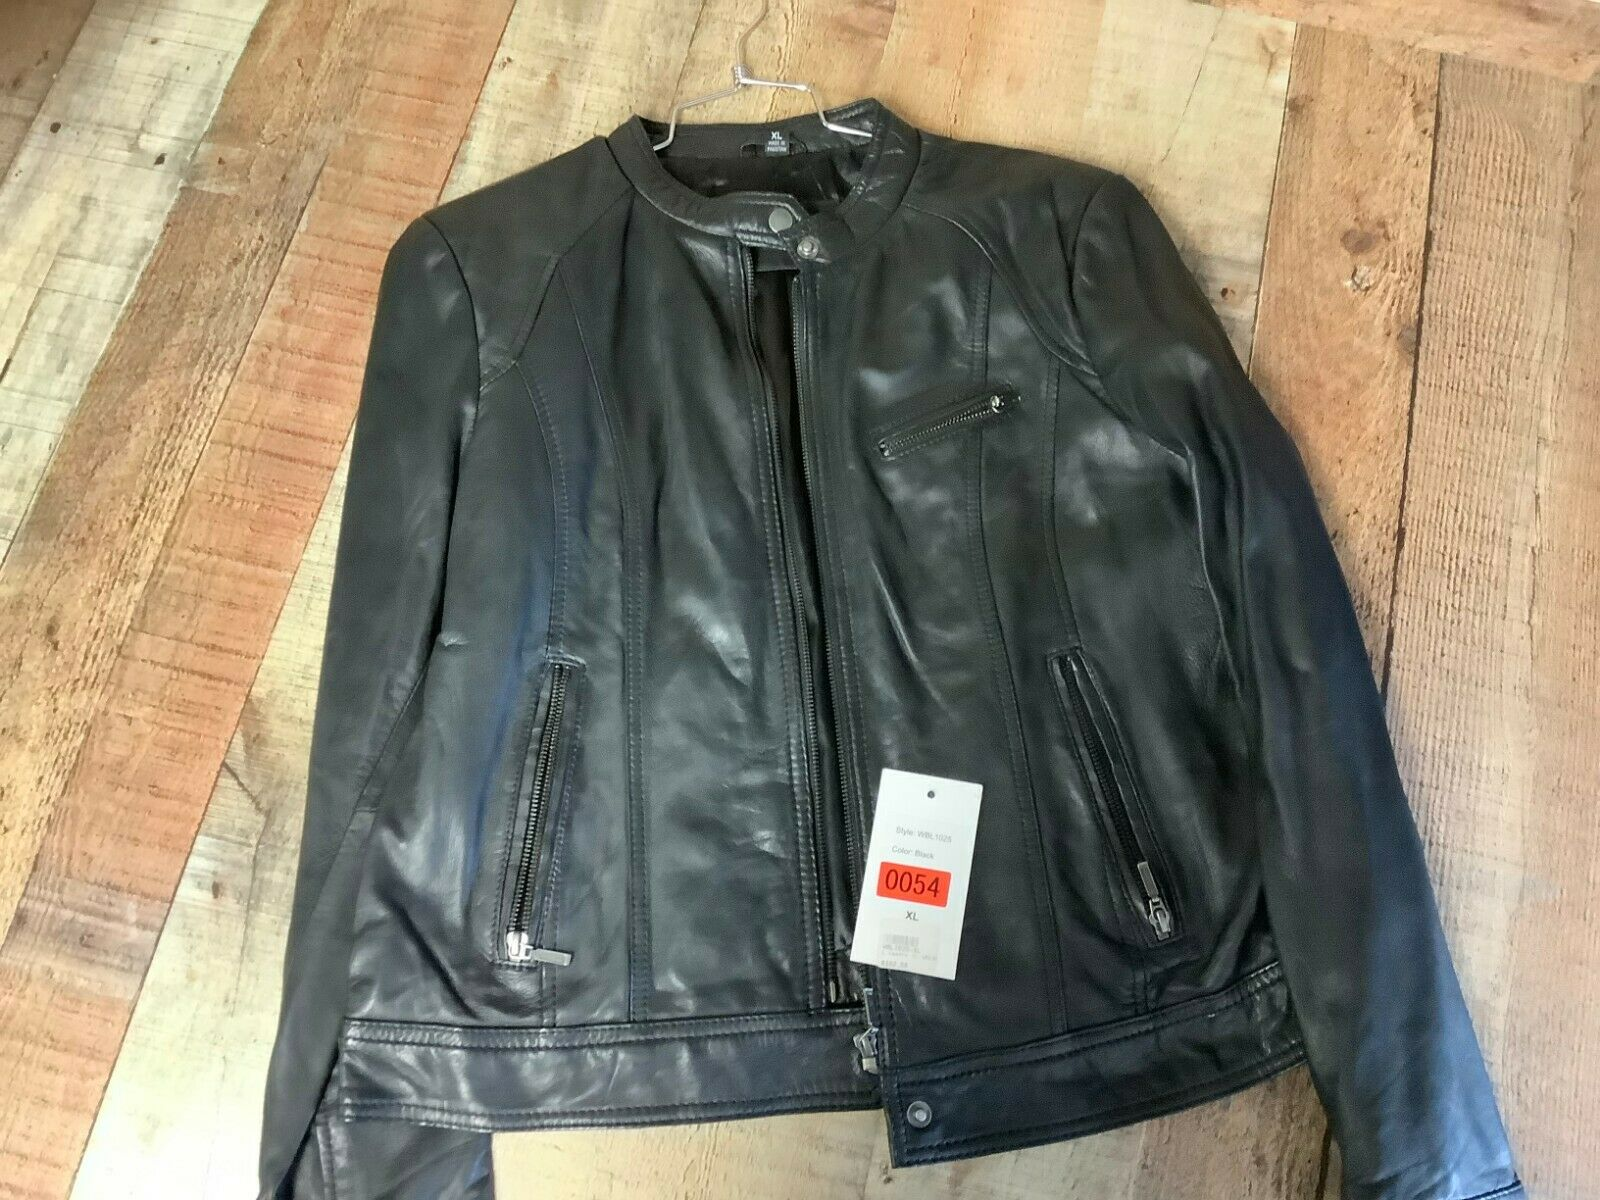 XL WOMENS Black Leather Vented Motorcycle Jacket WBL-1025 #0054